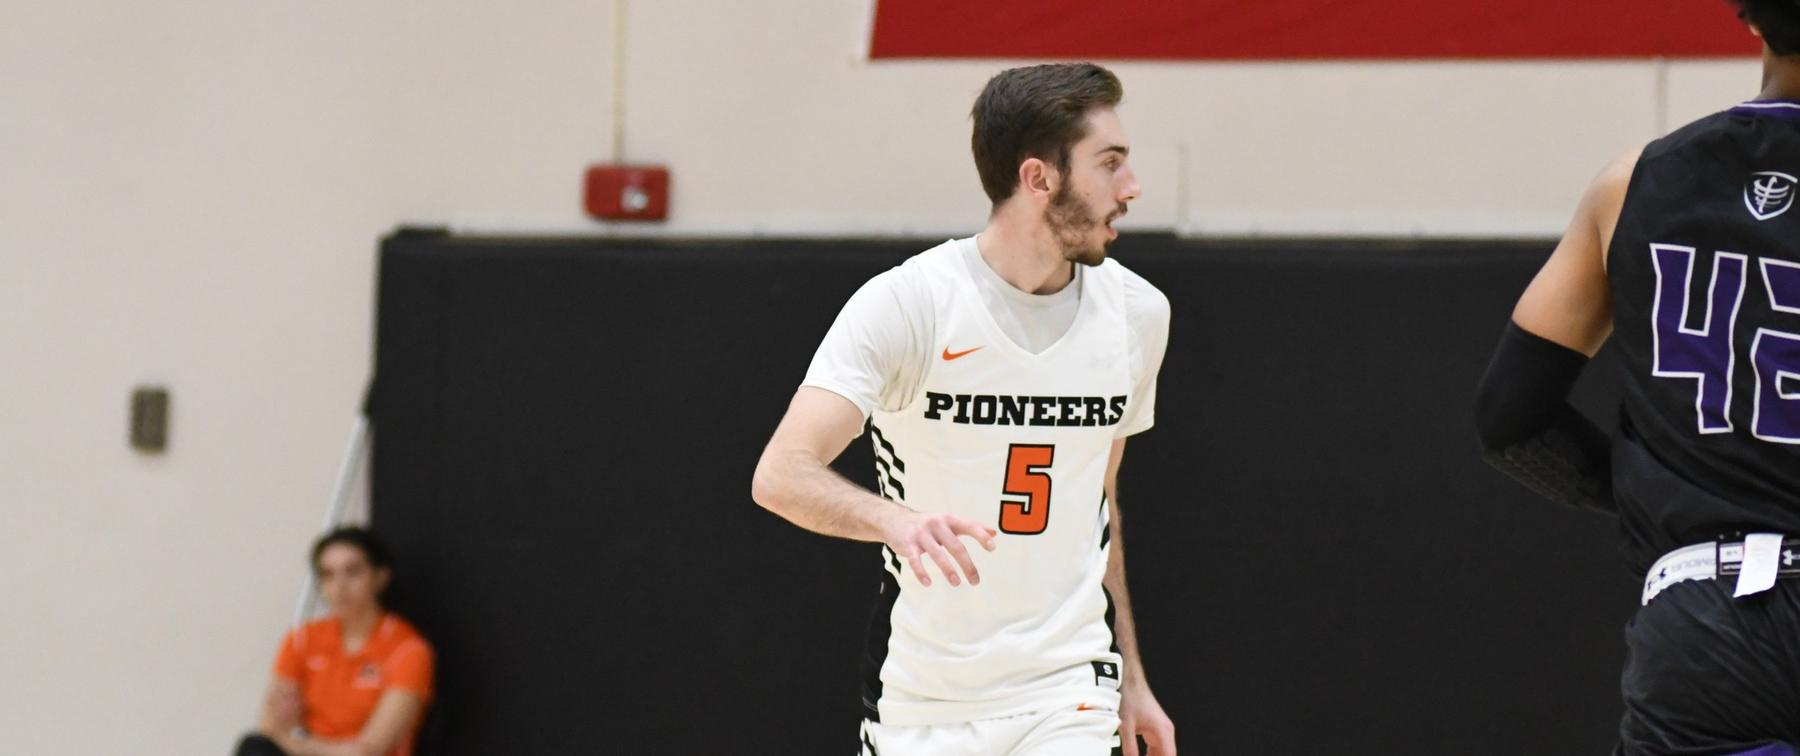 Henderson debuts with 14 points in loss to Concordia